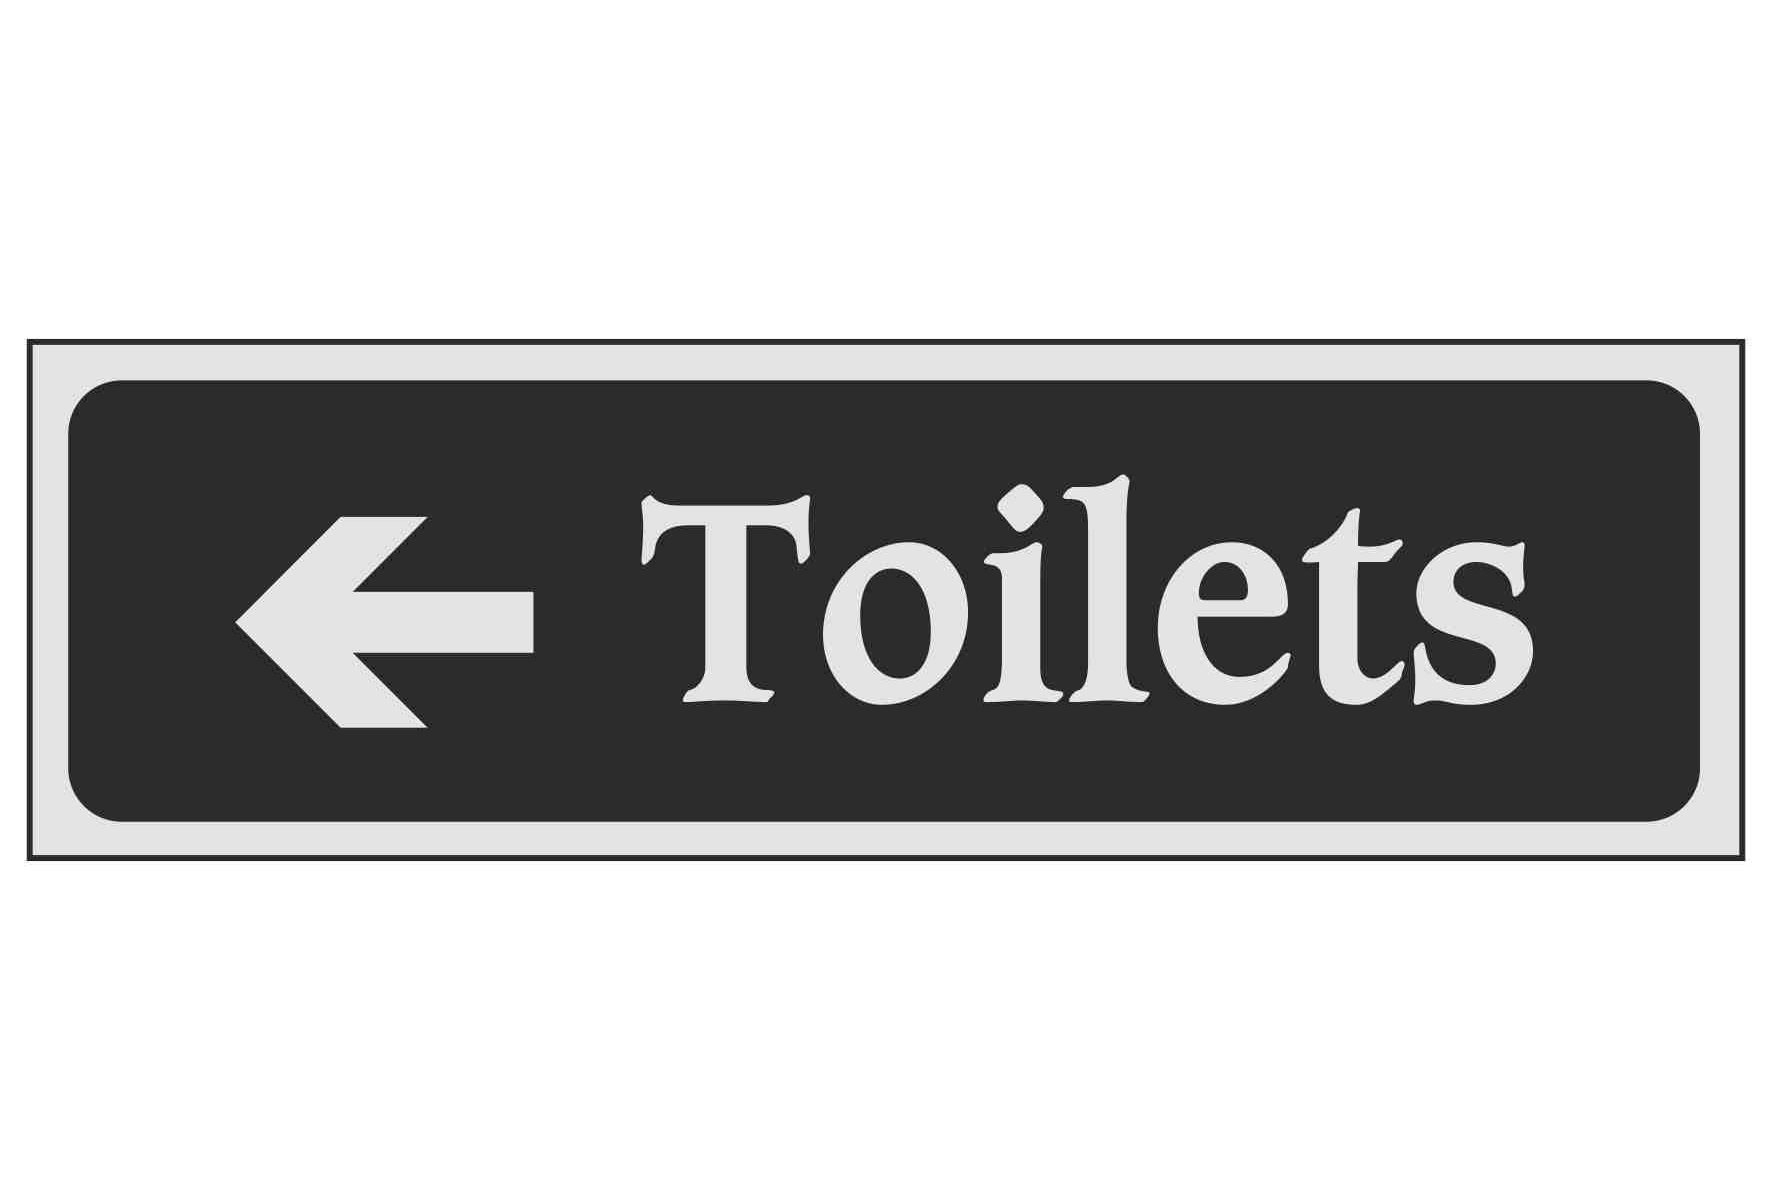 Toilets (Arrow left)